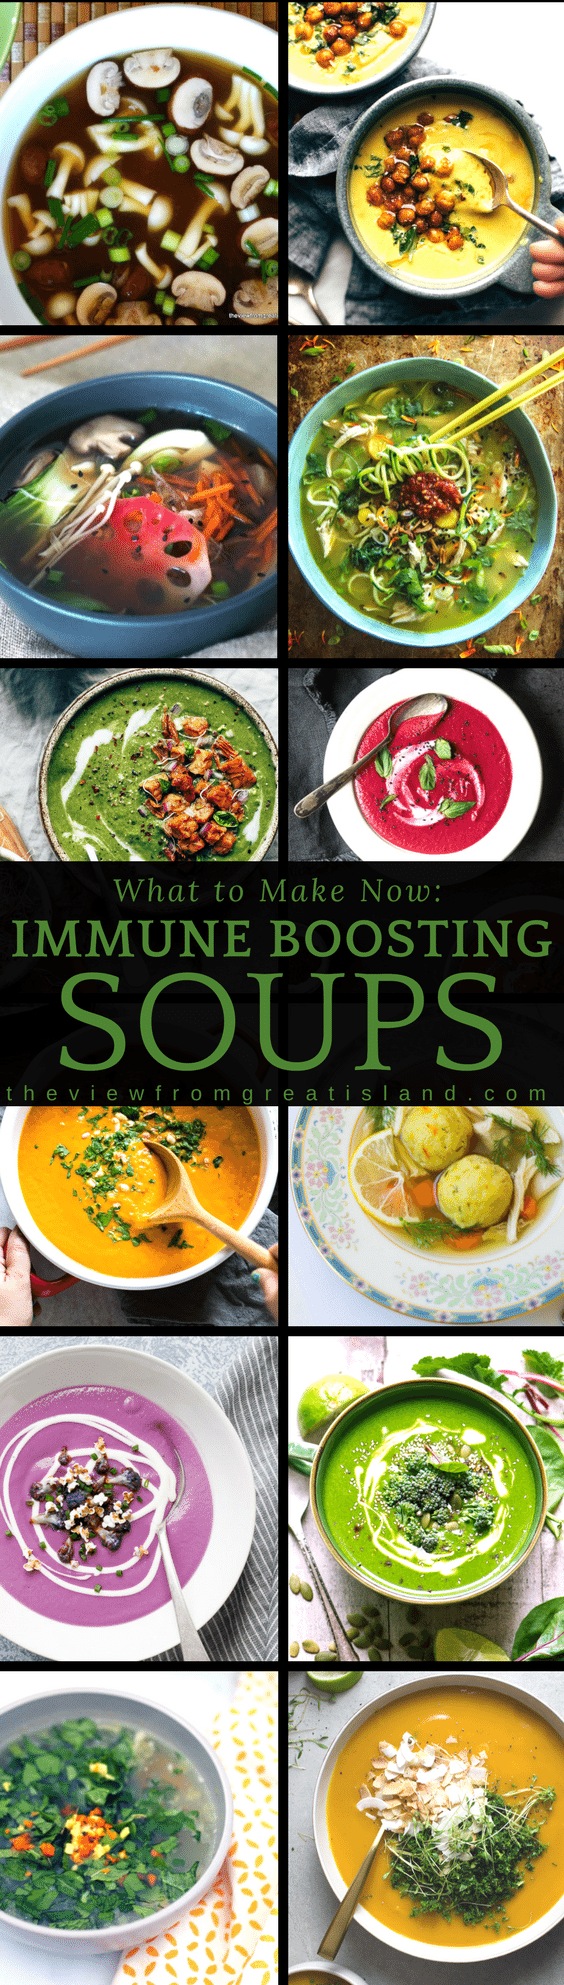 These healing soups are packed with immune boosting powerhouse ingredients like spinach, garlic, turmeric, saffron, and ginger. Whether you're fighting a flu or just trying to stay warm this winter, these recipes will keep you both healthy AND cozy! #soup #healthysoup #healing #immuneboost #chickensoup #beetsoup #turmeric #ginger #garlic #antiovidant #greensoup #misosoup #carrotsoup #comfortfood